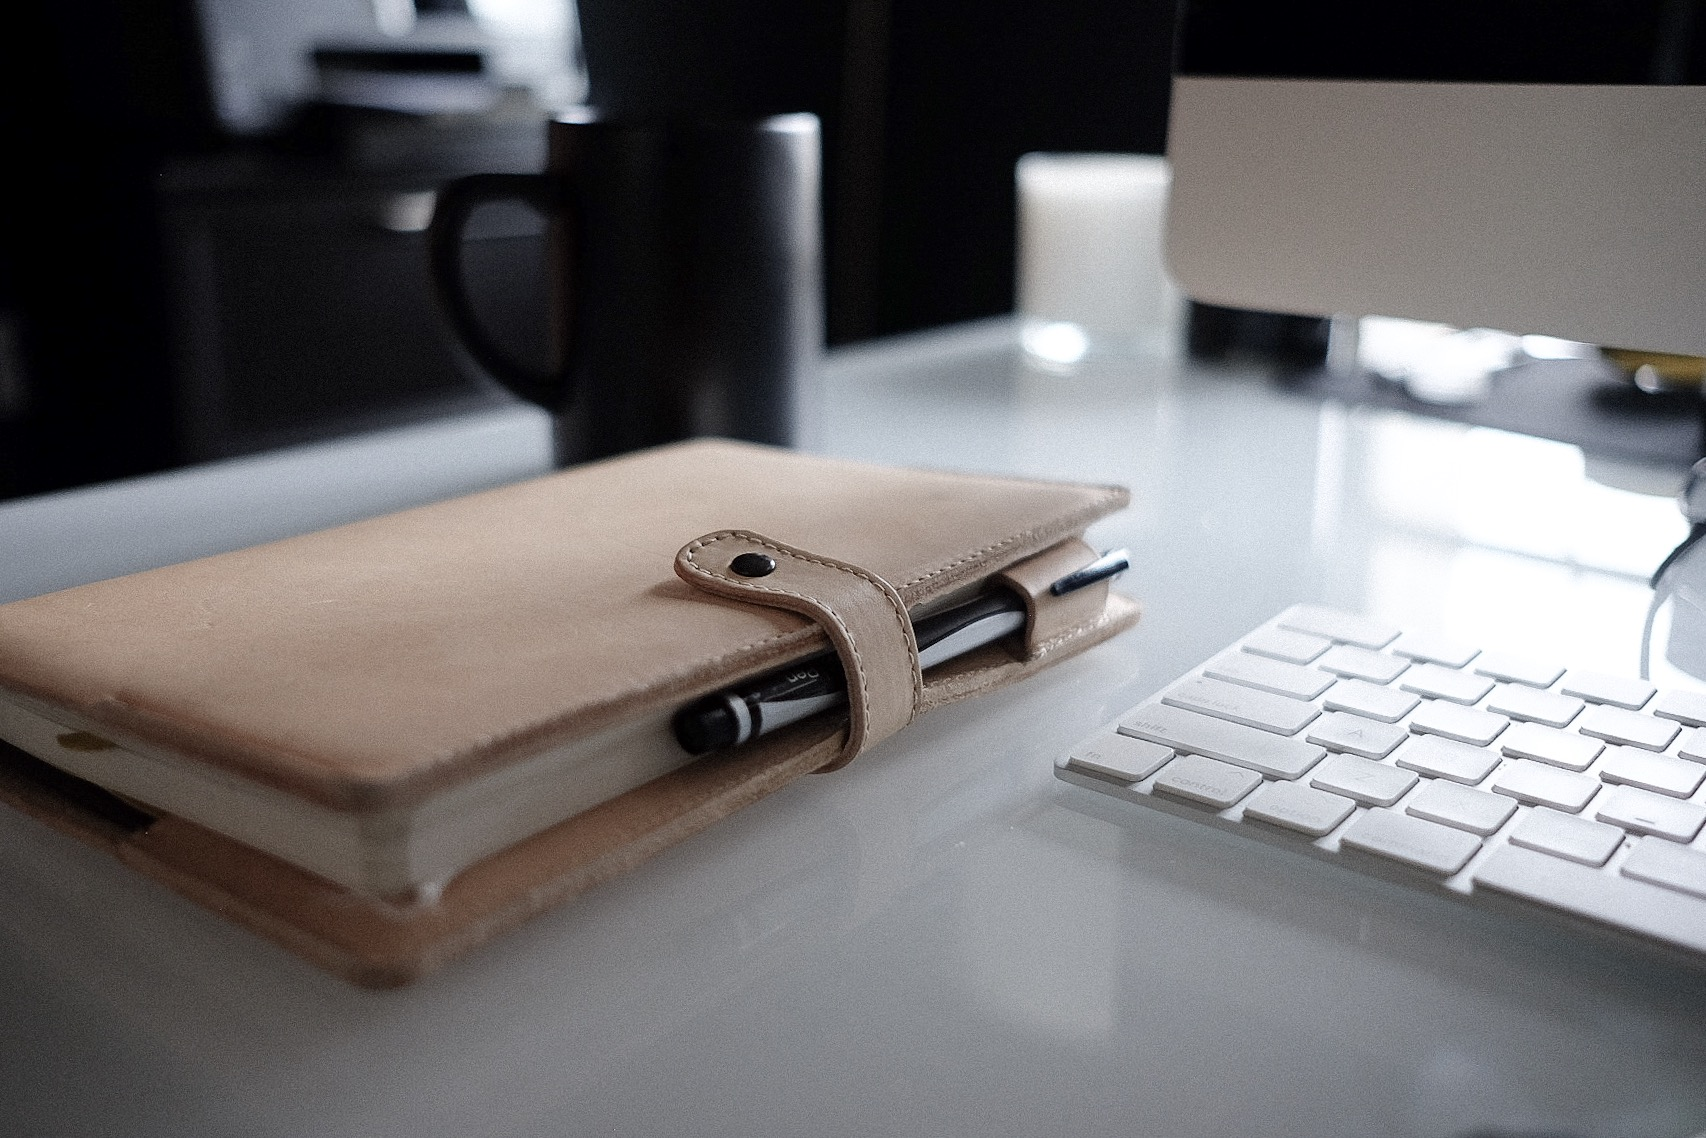 Pictured: BestSELF journal with Self Shield in Natural Leather